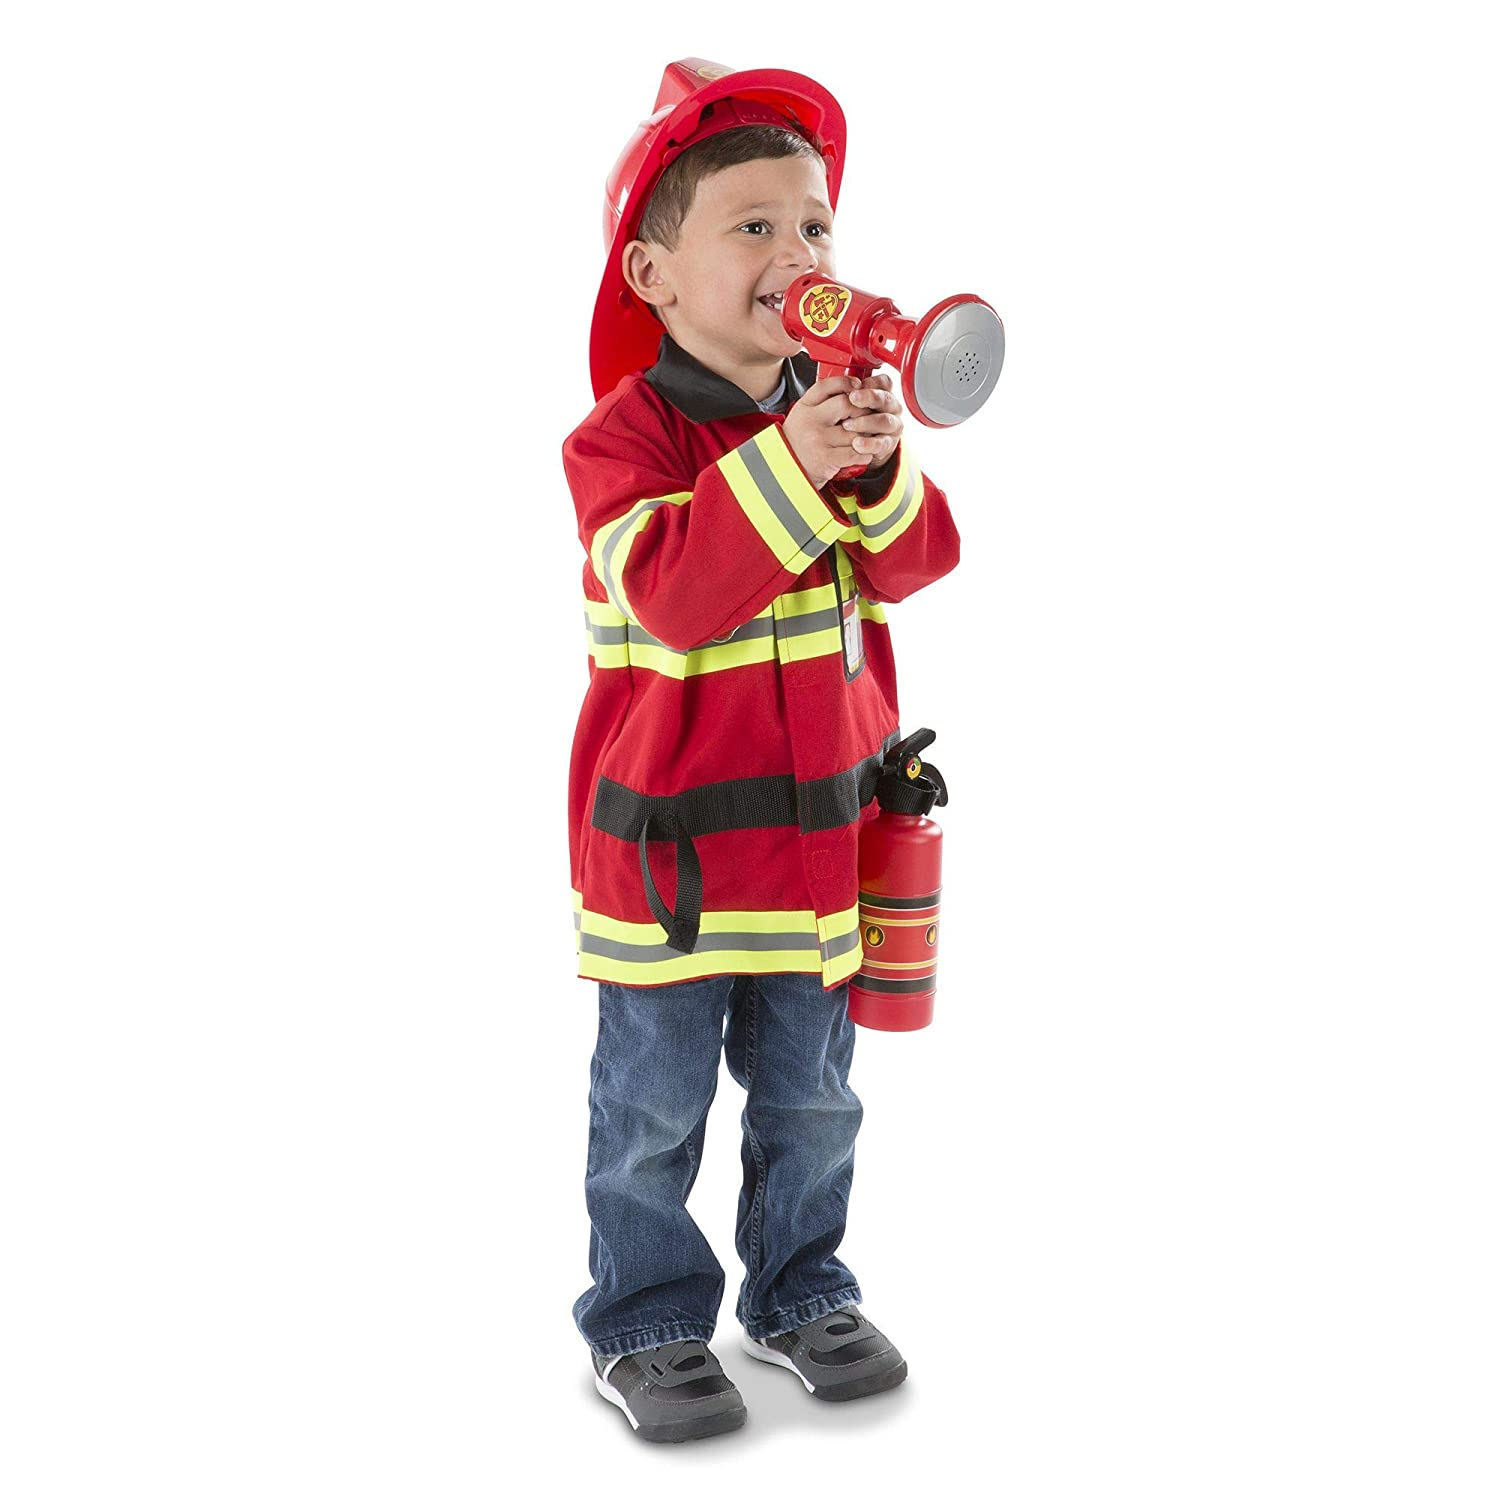 Melissa   Doug Fire Chief Role Play Costume Set  Pretend Play  Frustration-Free Packaging  Bright Red  17 5 H x 24 W x 2 L